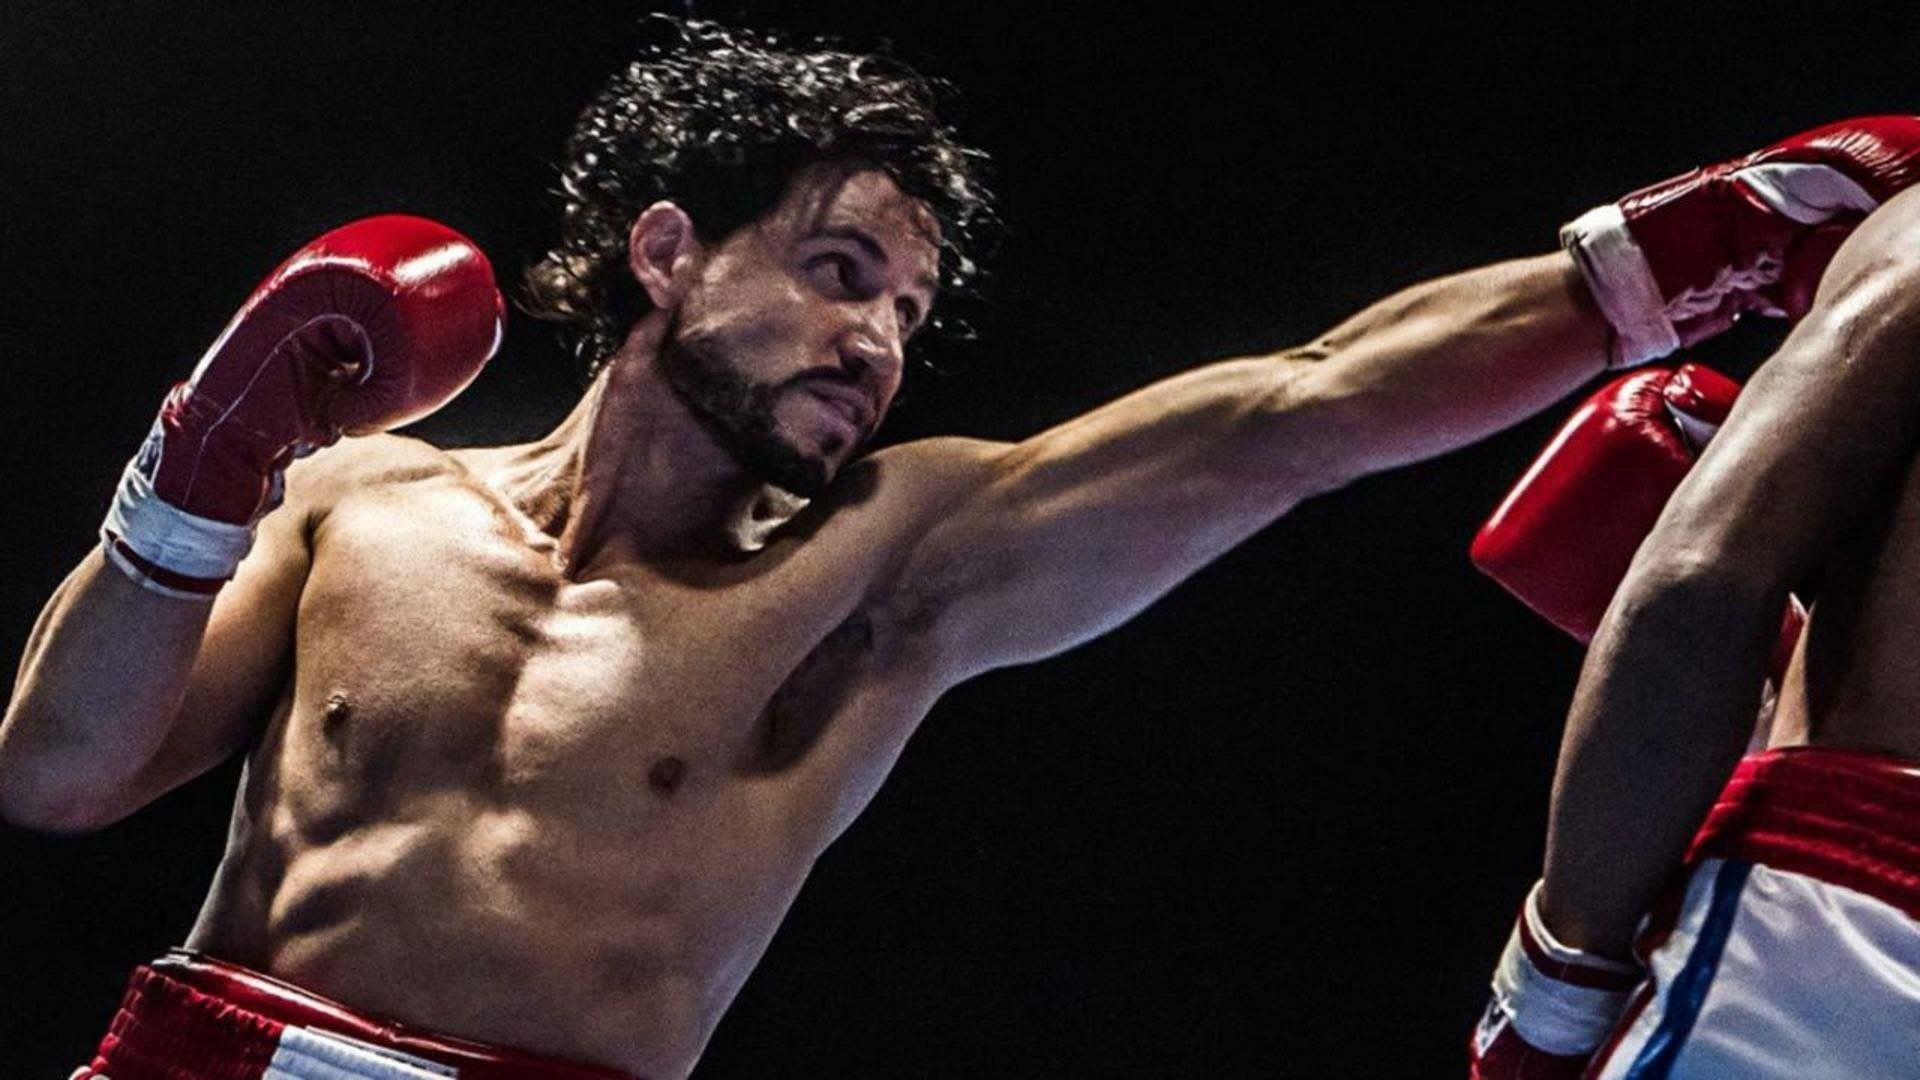 Edgar Ramirez as Roberto Duran in Hands of Stone